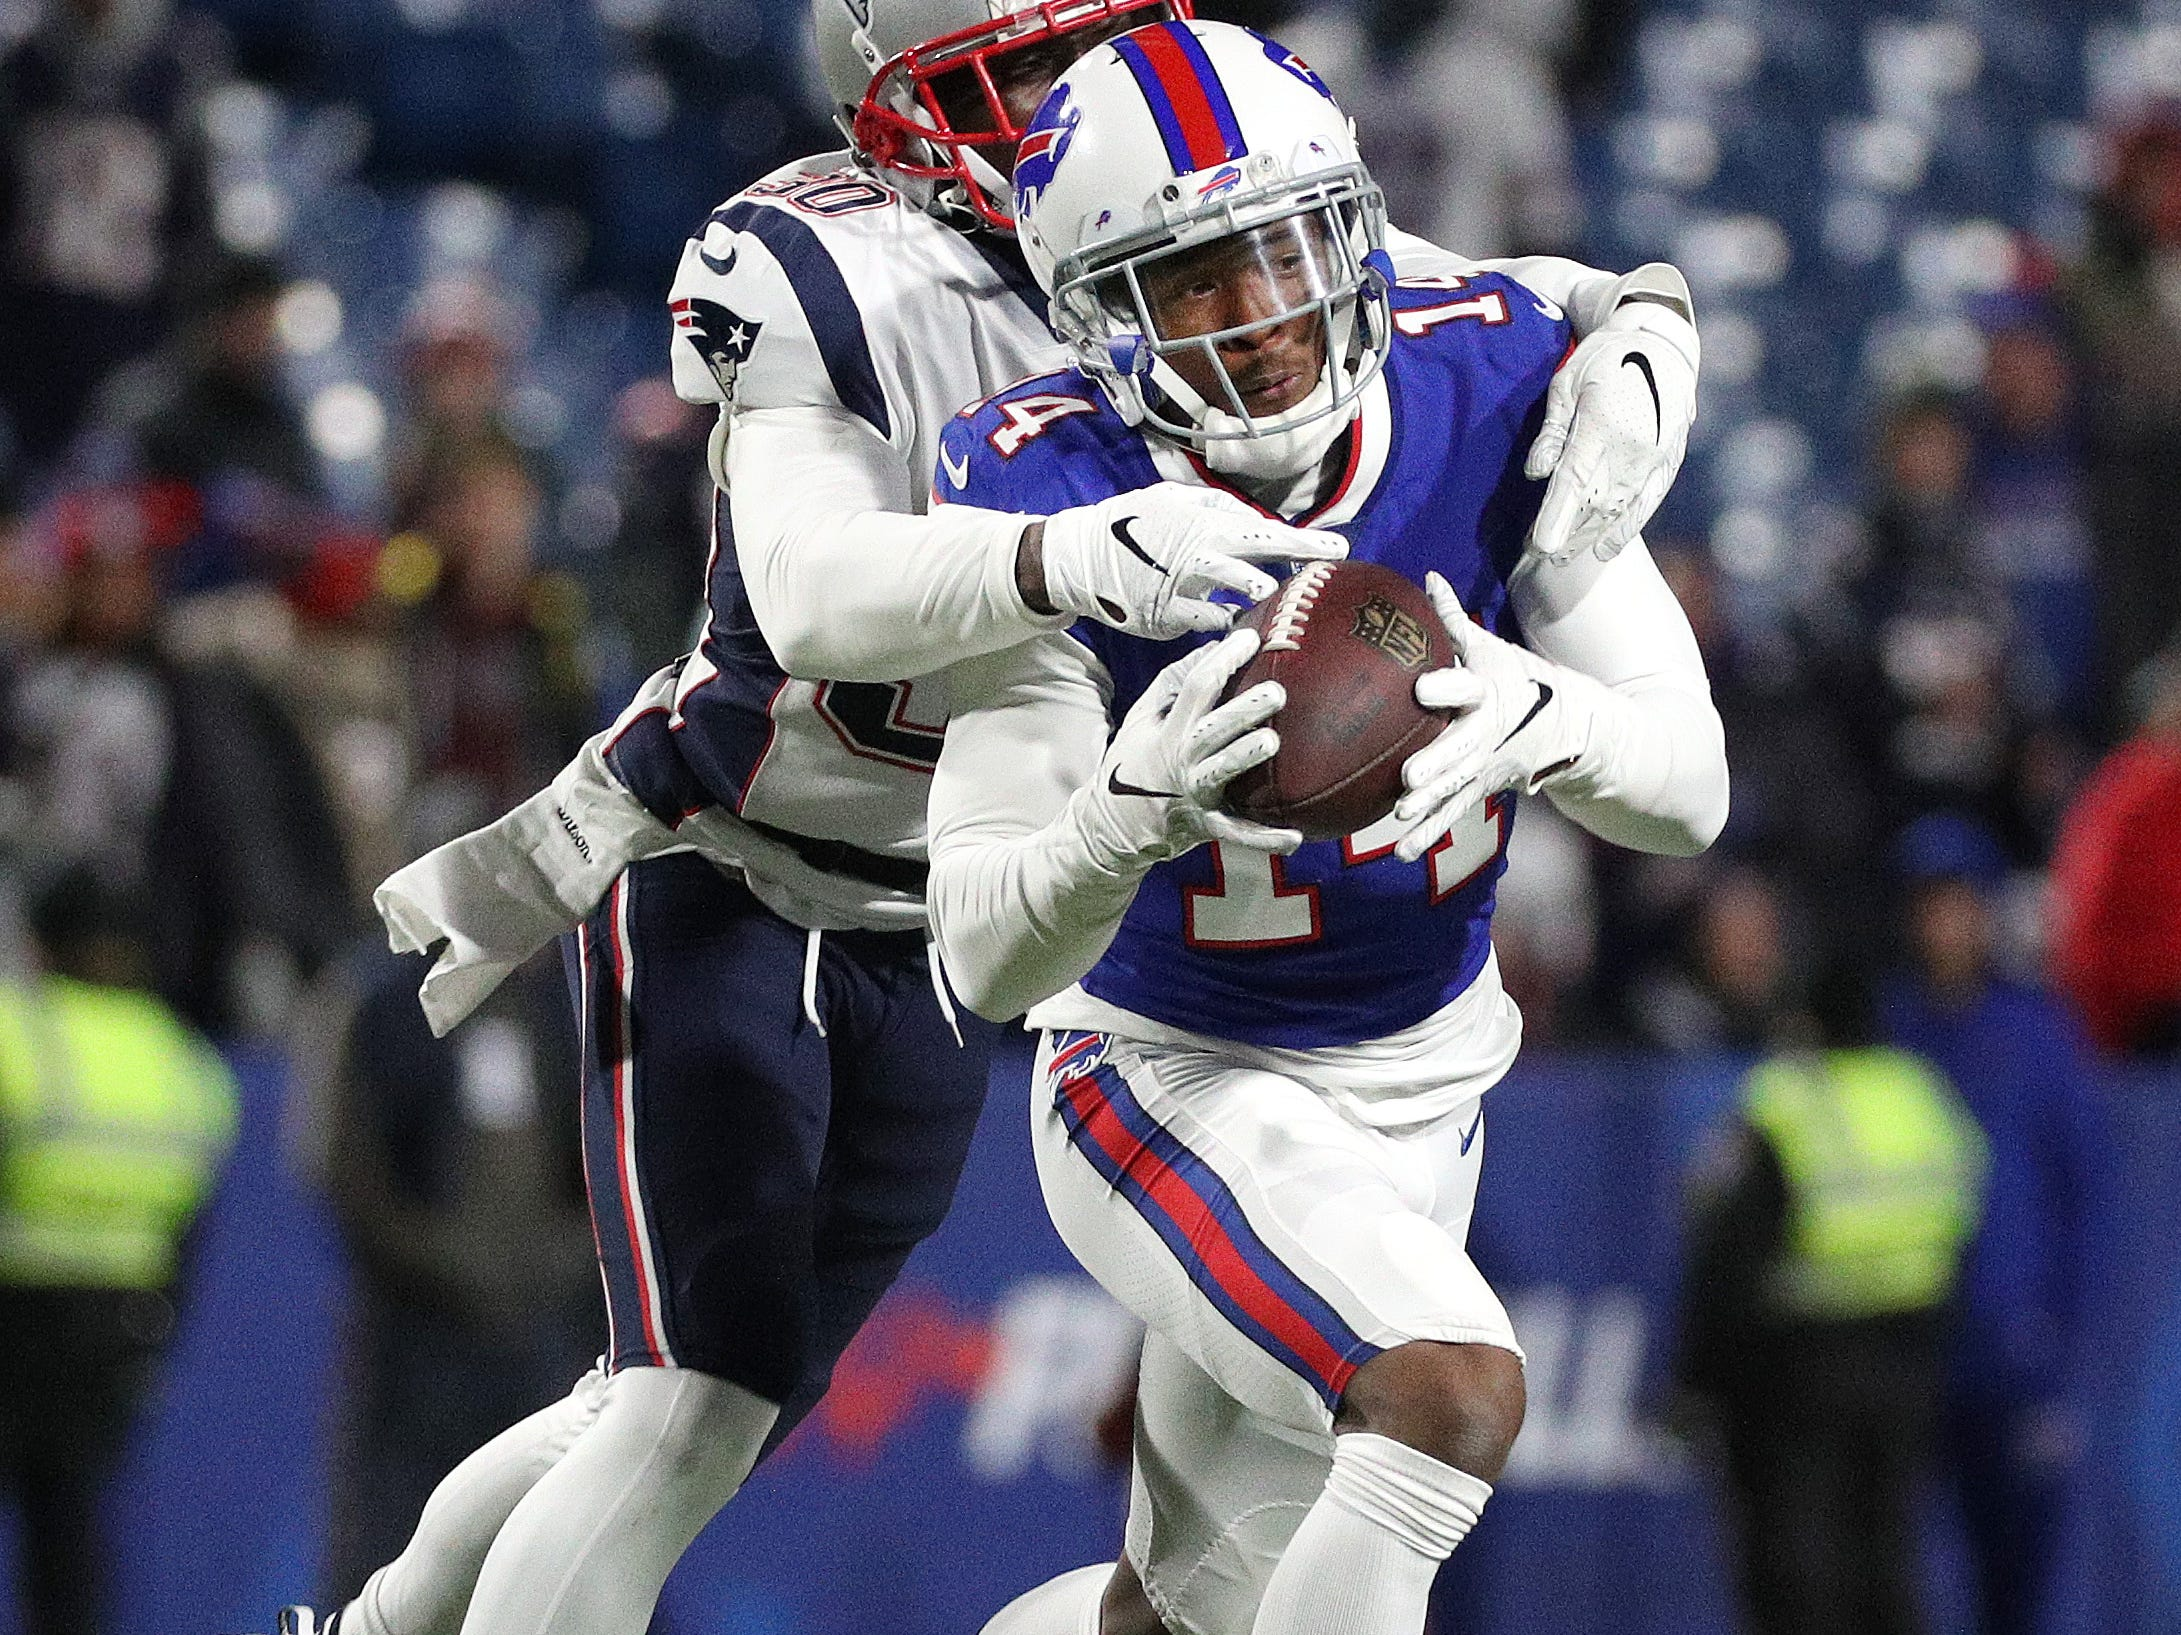 Bills receiver Ray-Ray McCloud lll catches a pass behind Patriots Jason McCourty.